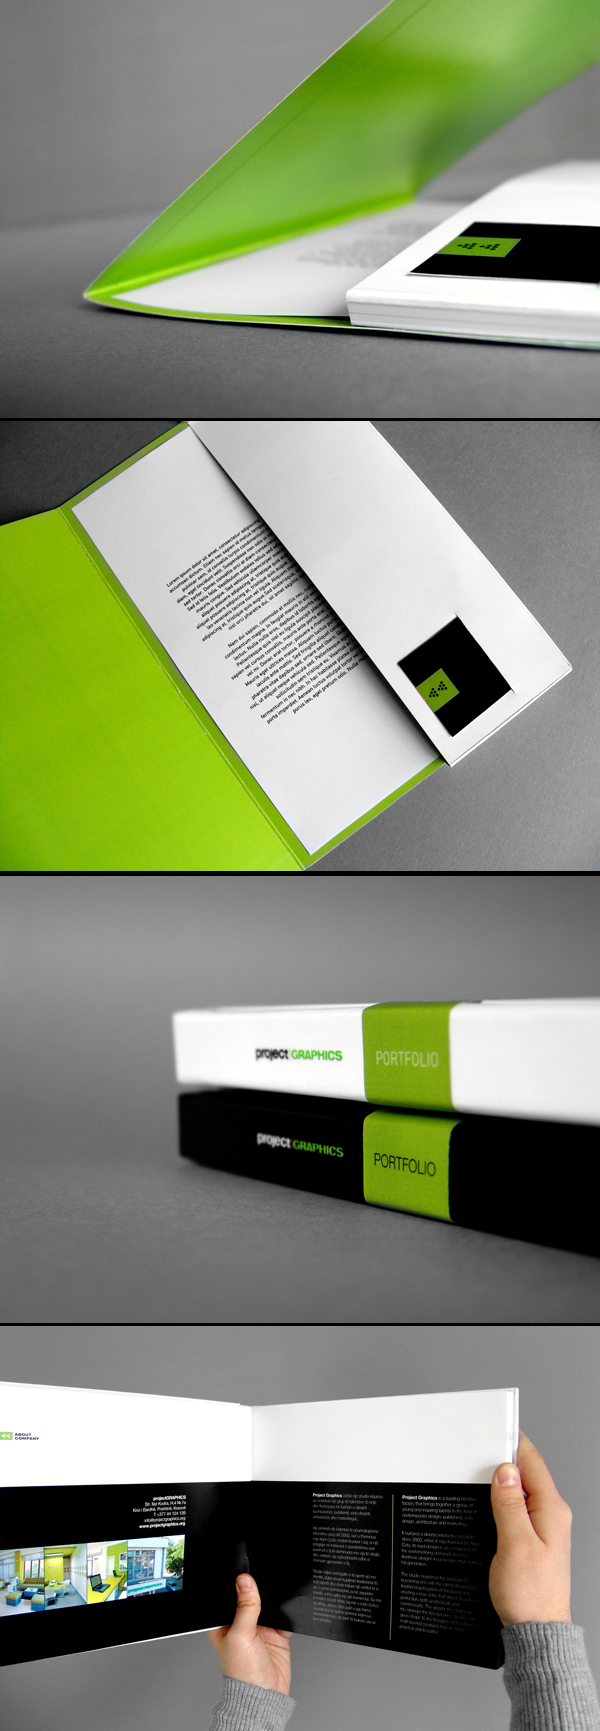 T-shirt design zeixs - Projectgraphics Corporate Identity Was Featured In Various International Design Publications See The List Below